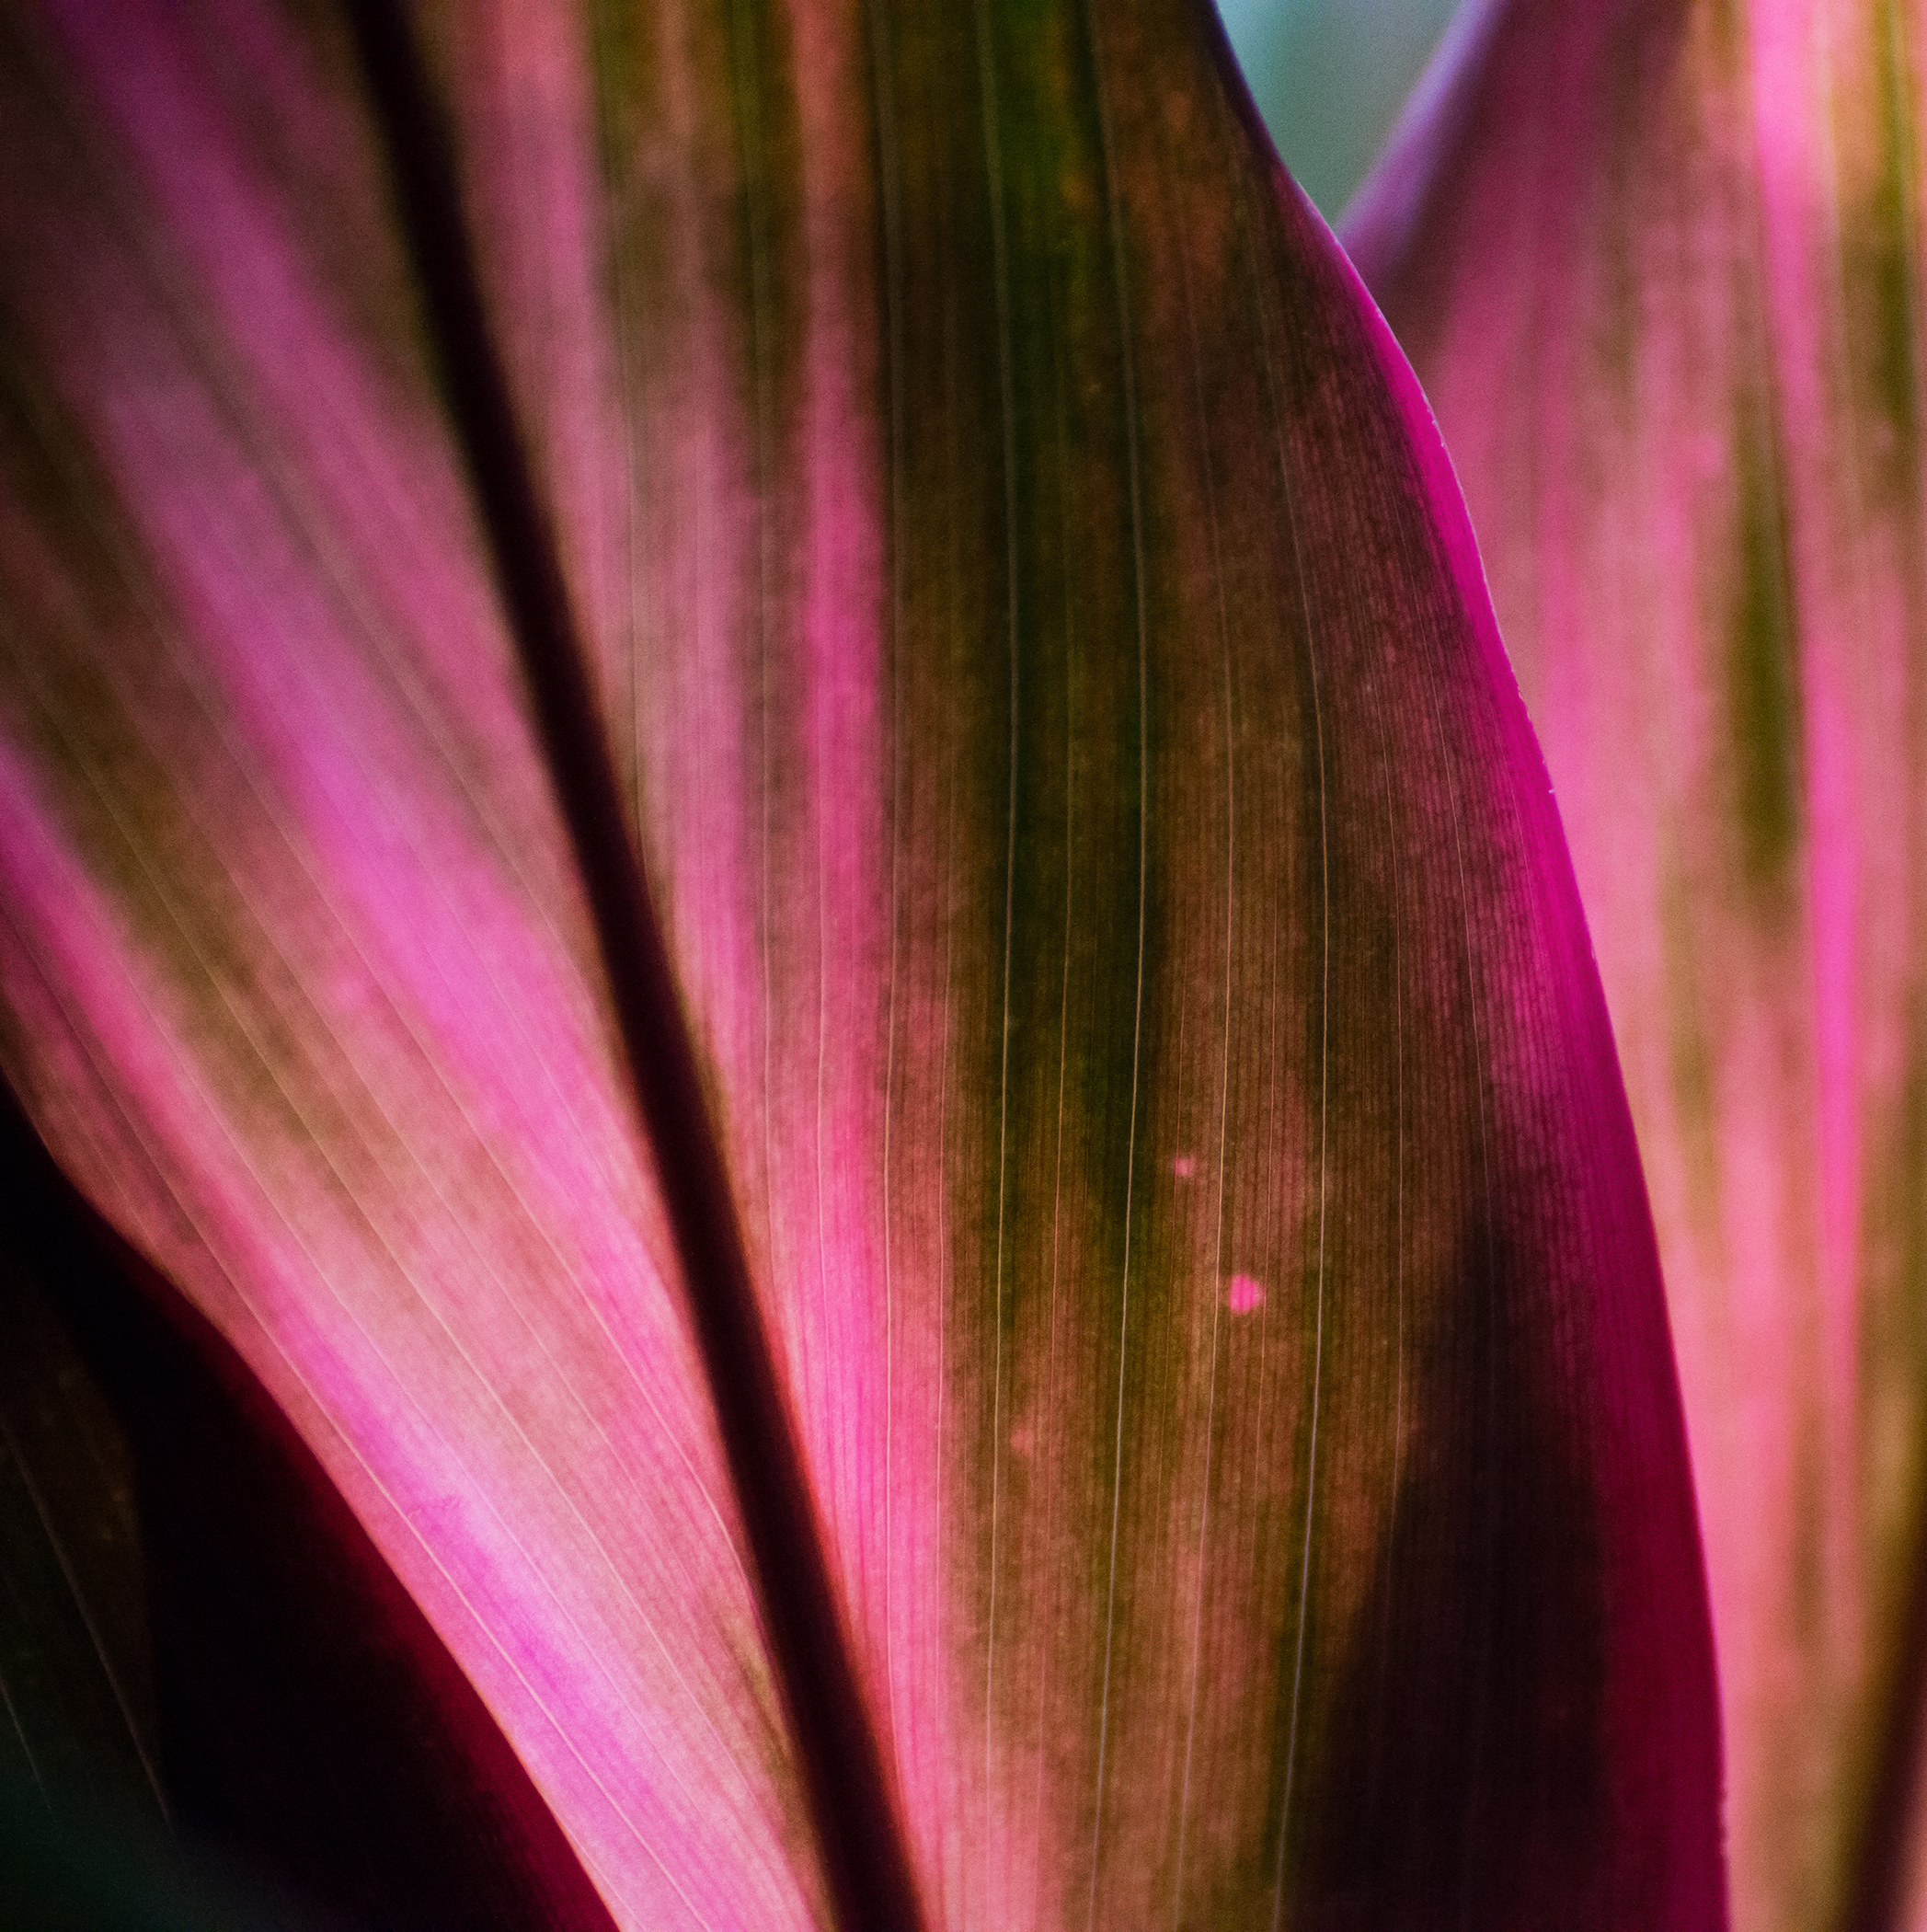 Abstract in Nature #41